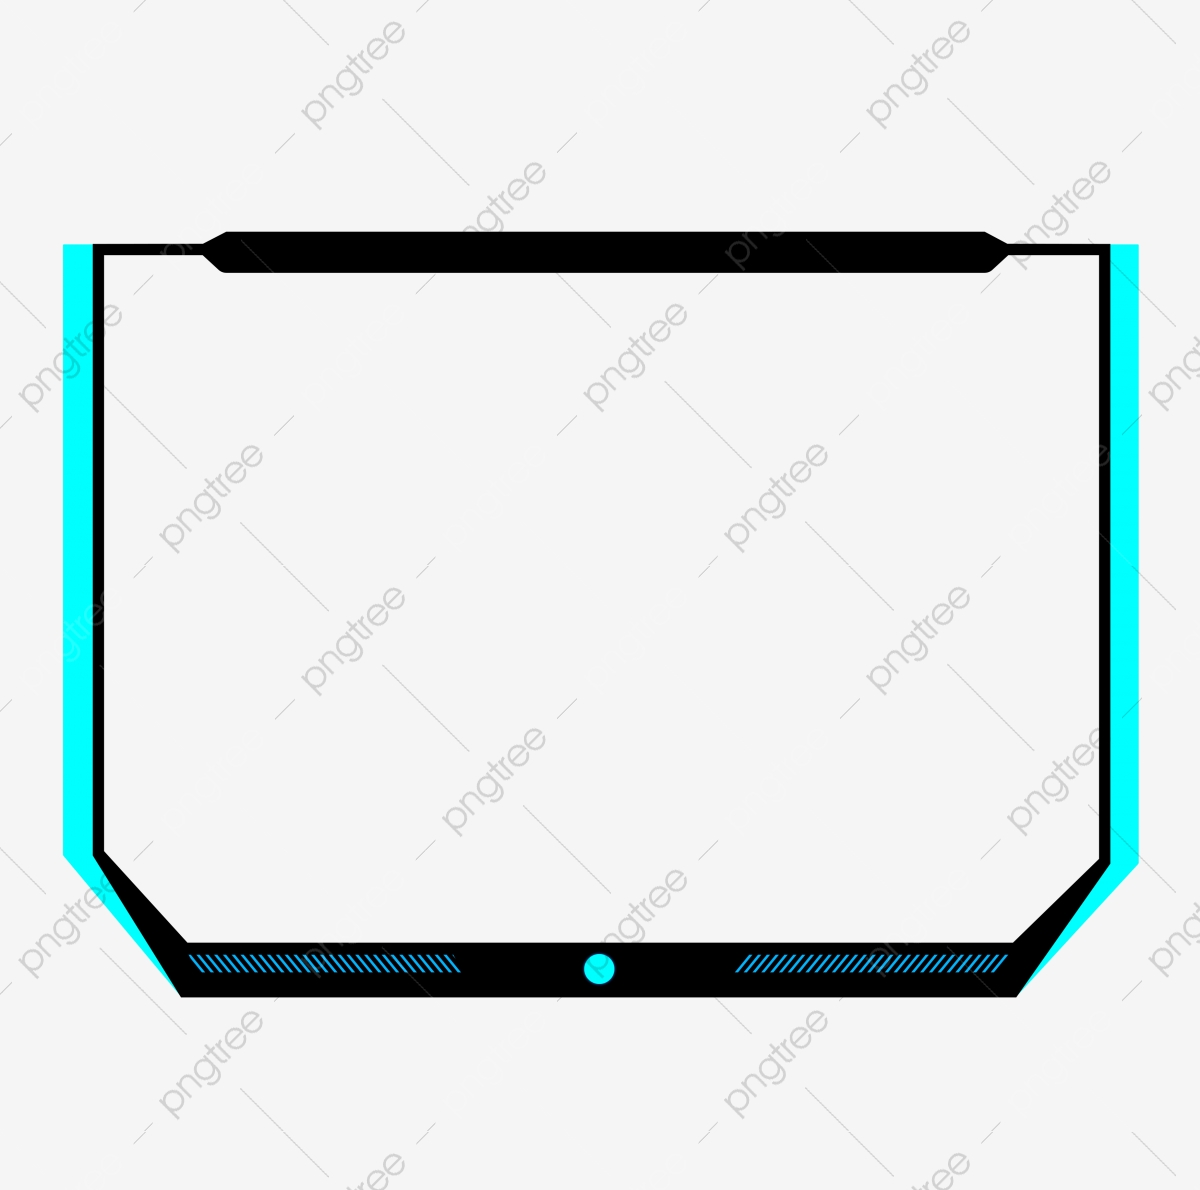 Frame Streaming Game Game Stream Live Png Transparent Clipart Image And Psd File For Free Download